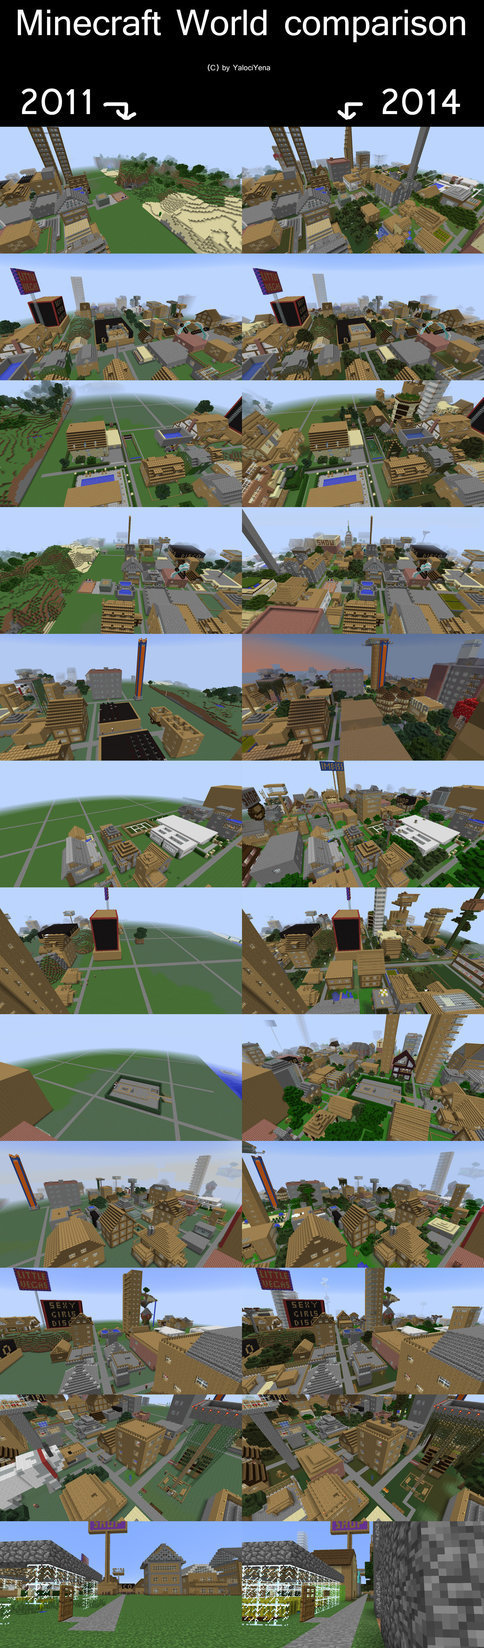 http://img.niceminecraft.net/Funny/minecraft_world_comparison_2011_to_2014_by_yalociyena.jpg